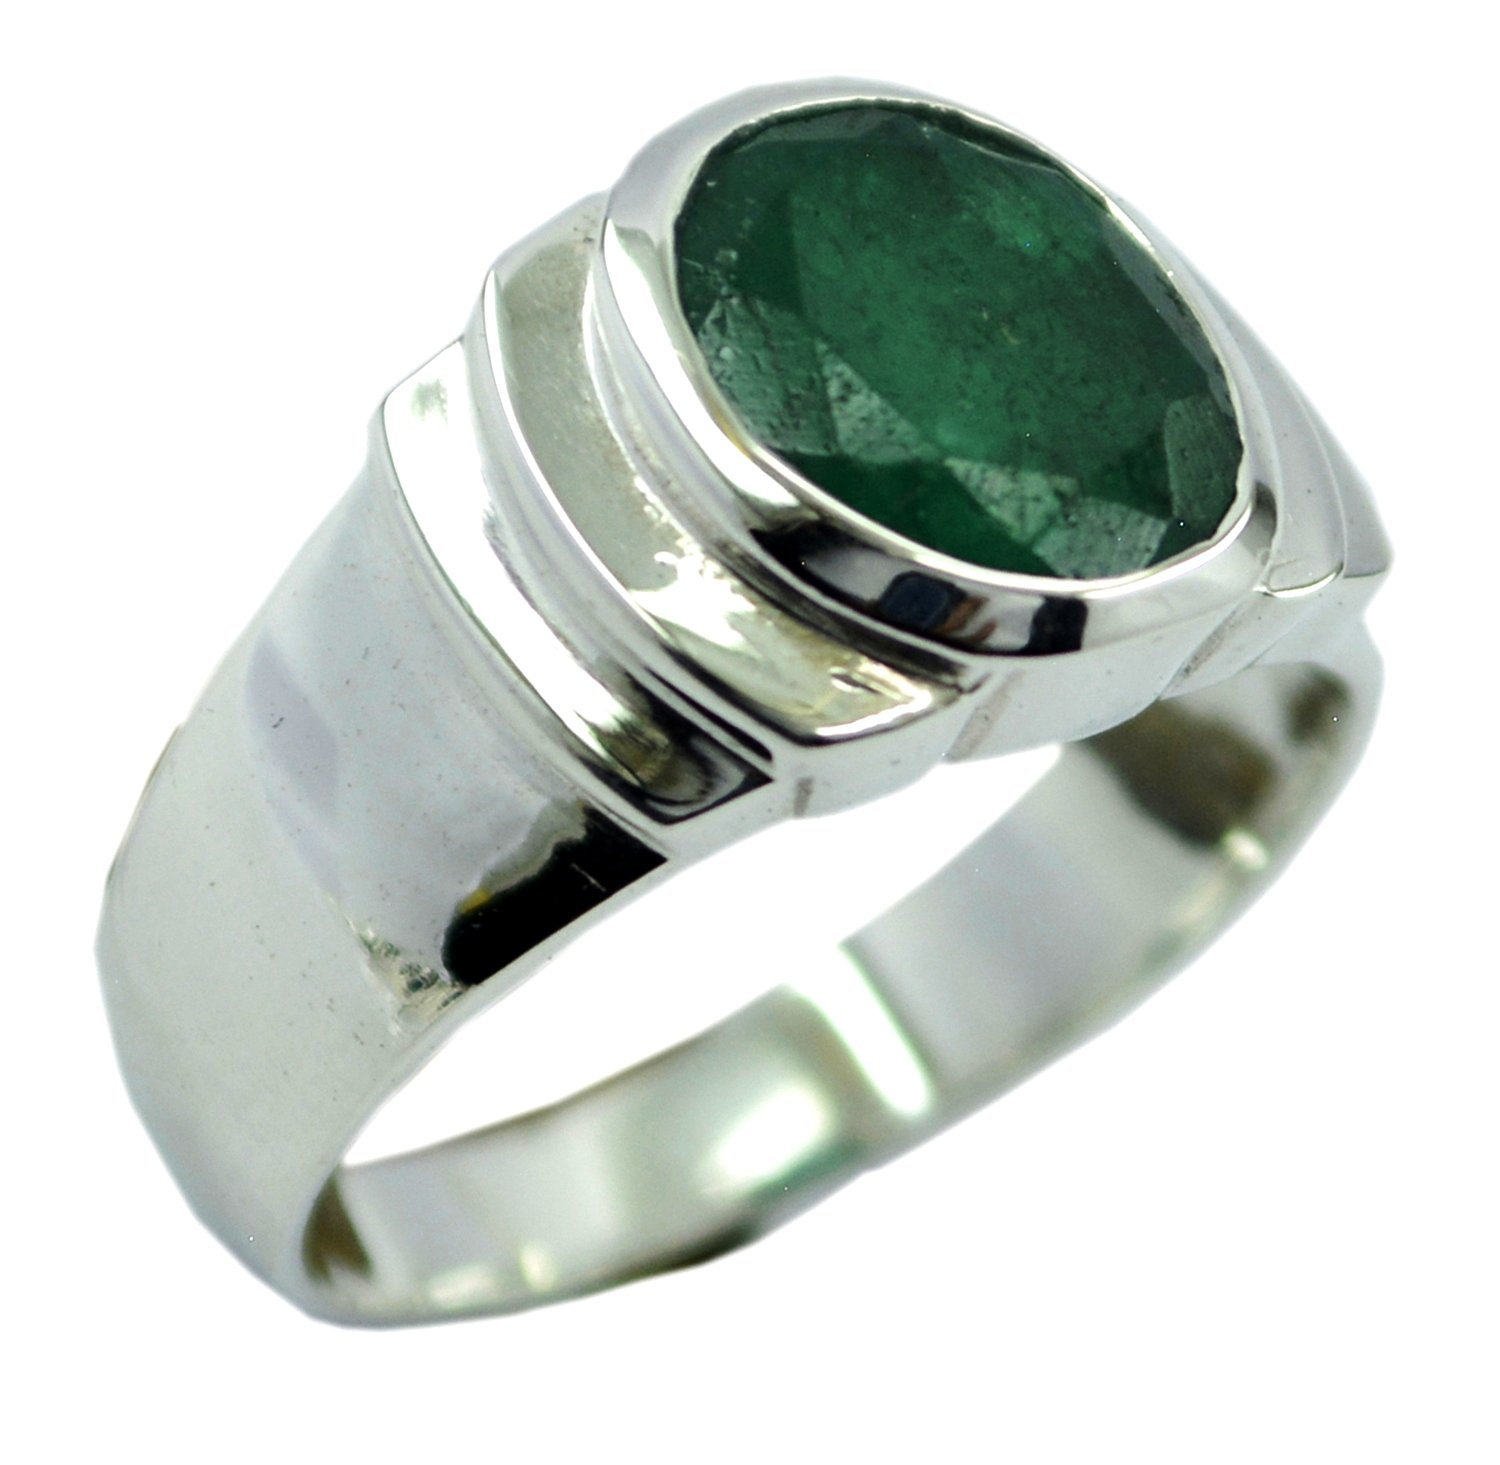 Genuine Indian Emerald Ring For Women Men Chakra Healing Sterling Jewelry Silver Size 5,6,7,8,9,10,11,12